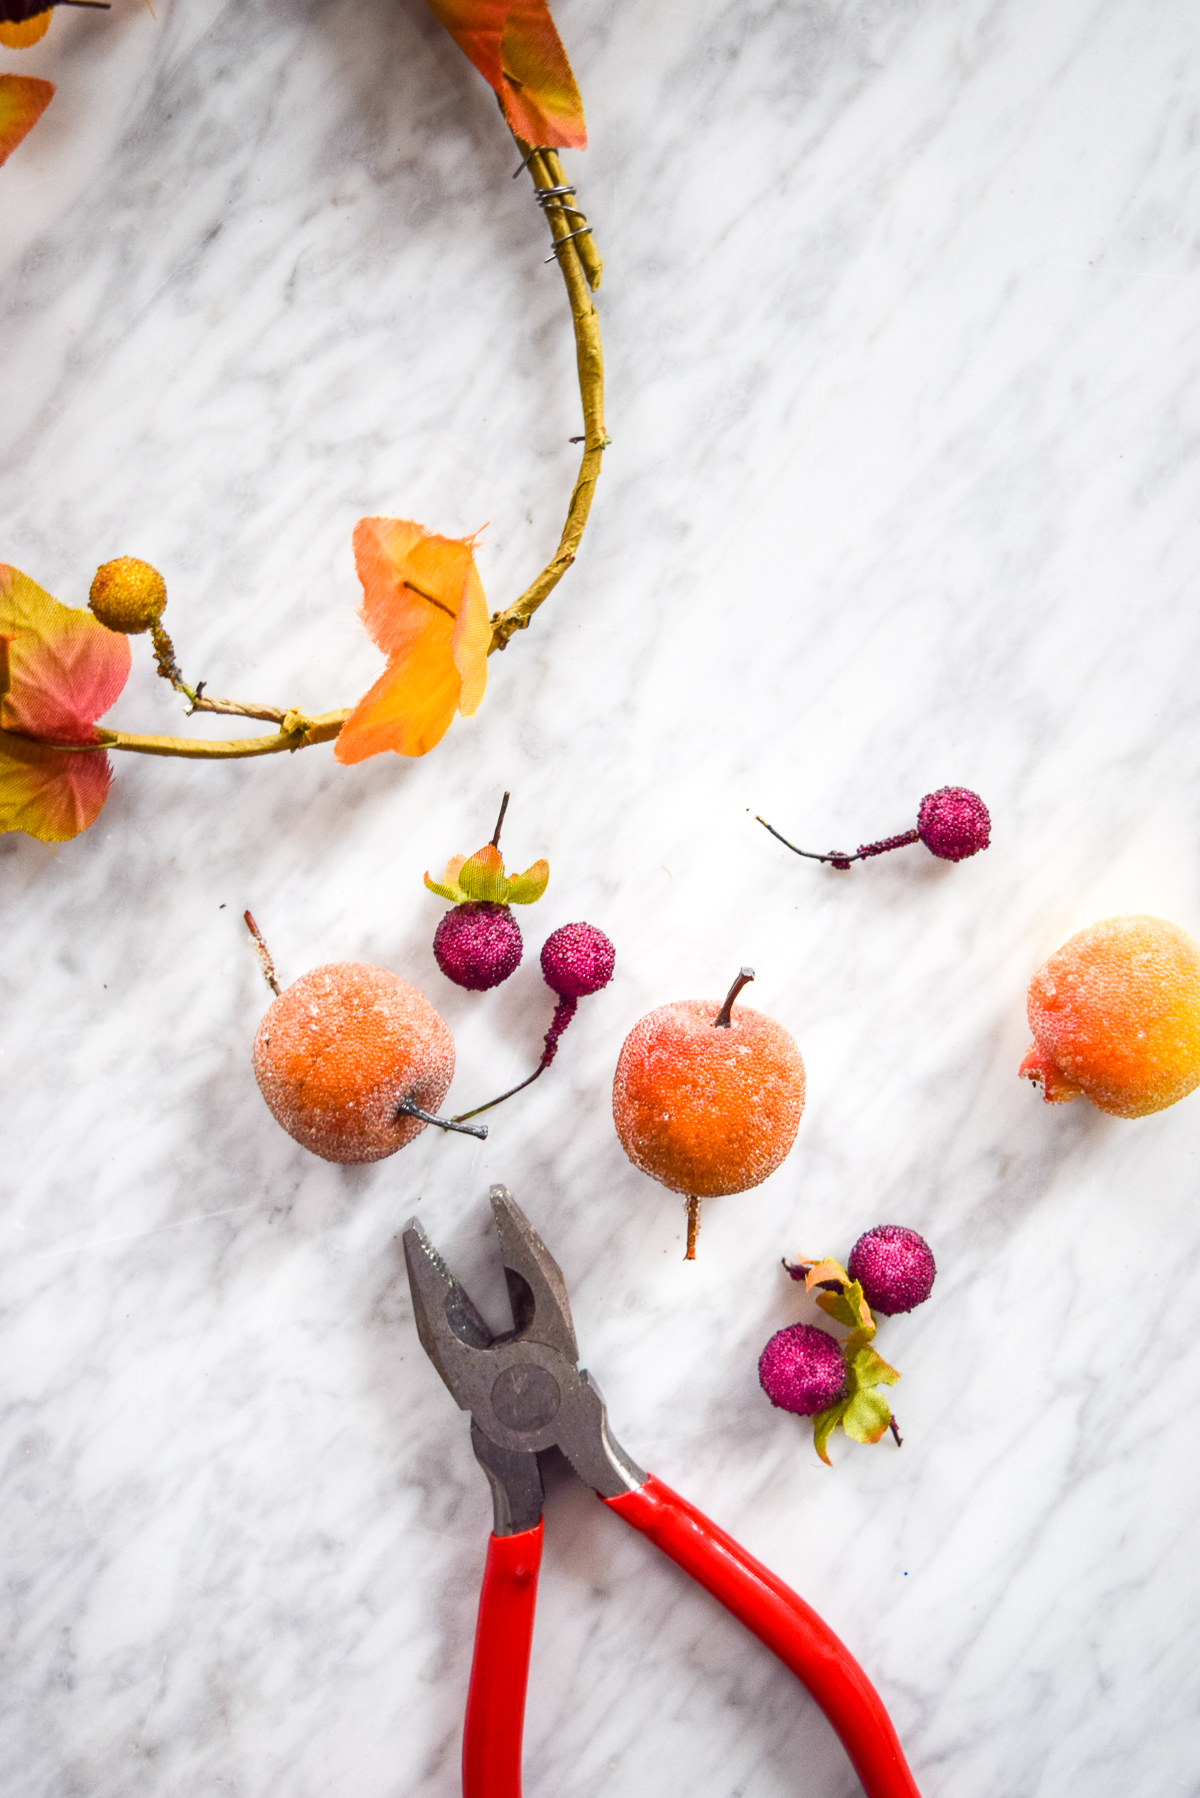 wire snippers on a marble table with fake fruit